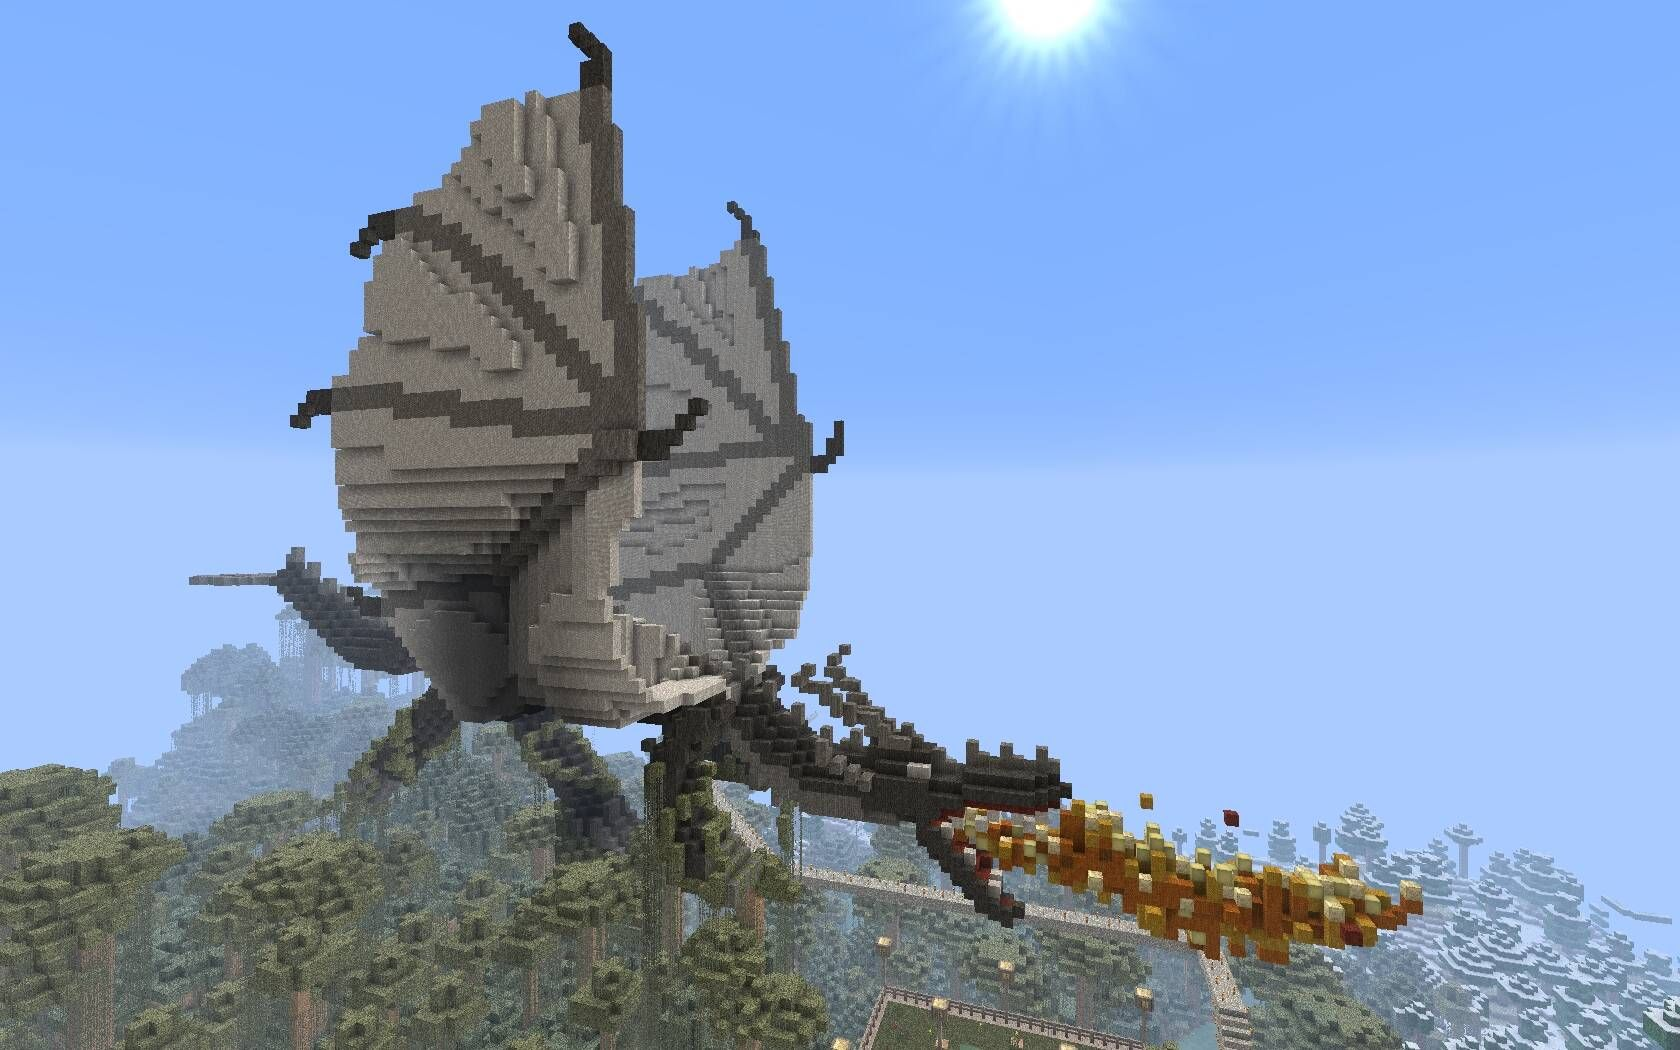 Minecraft Minecraft Dragon Minecraft Fire Breathing Dragon Minecraft Pictures Minecraft Blueprints Minecraft City Buildings